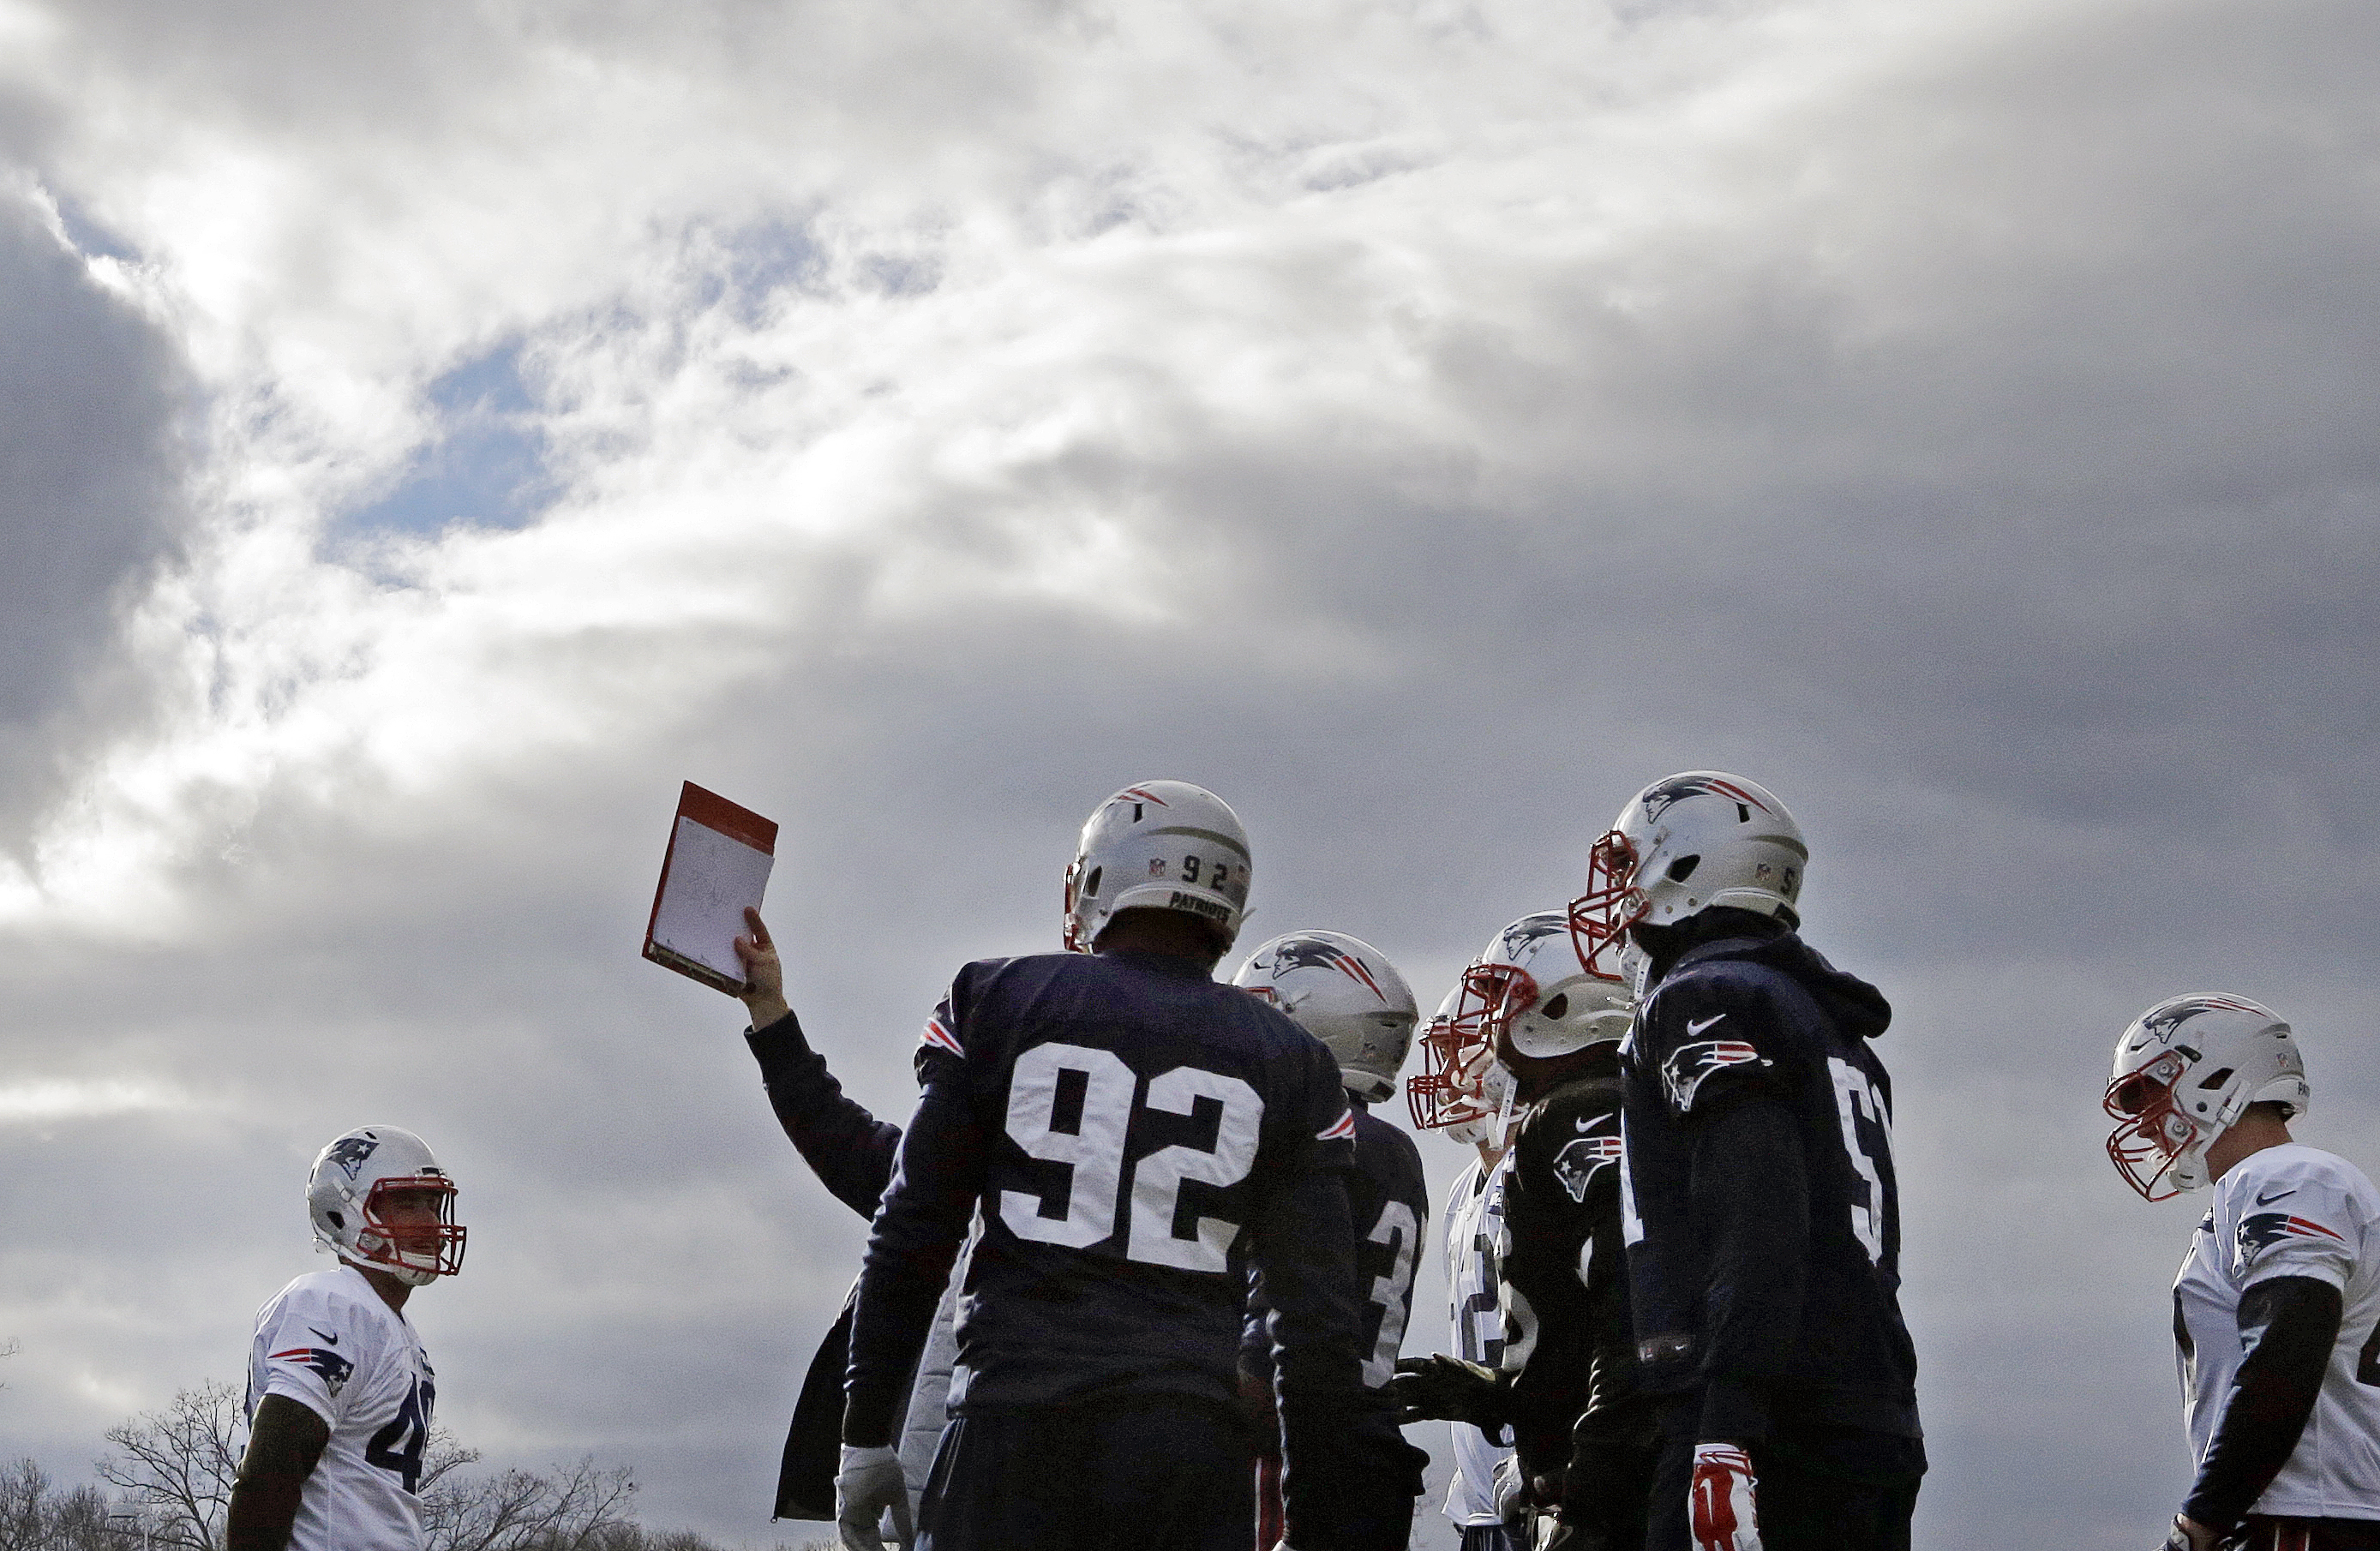 New England Patriots players huddle to look at a playbook during NFL football practice, Wednesday, Dec. 28, 2016, in Foxborough, Mass. (AP Photo/Elise Amendola)